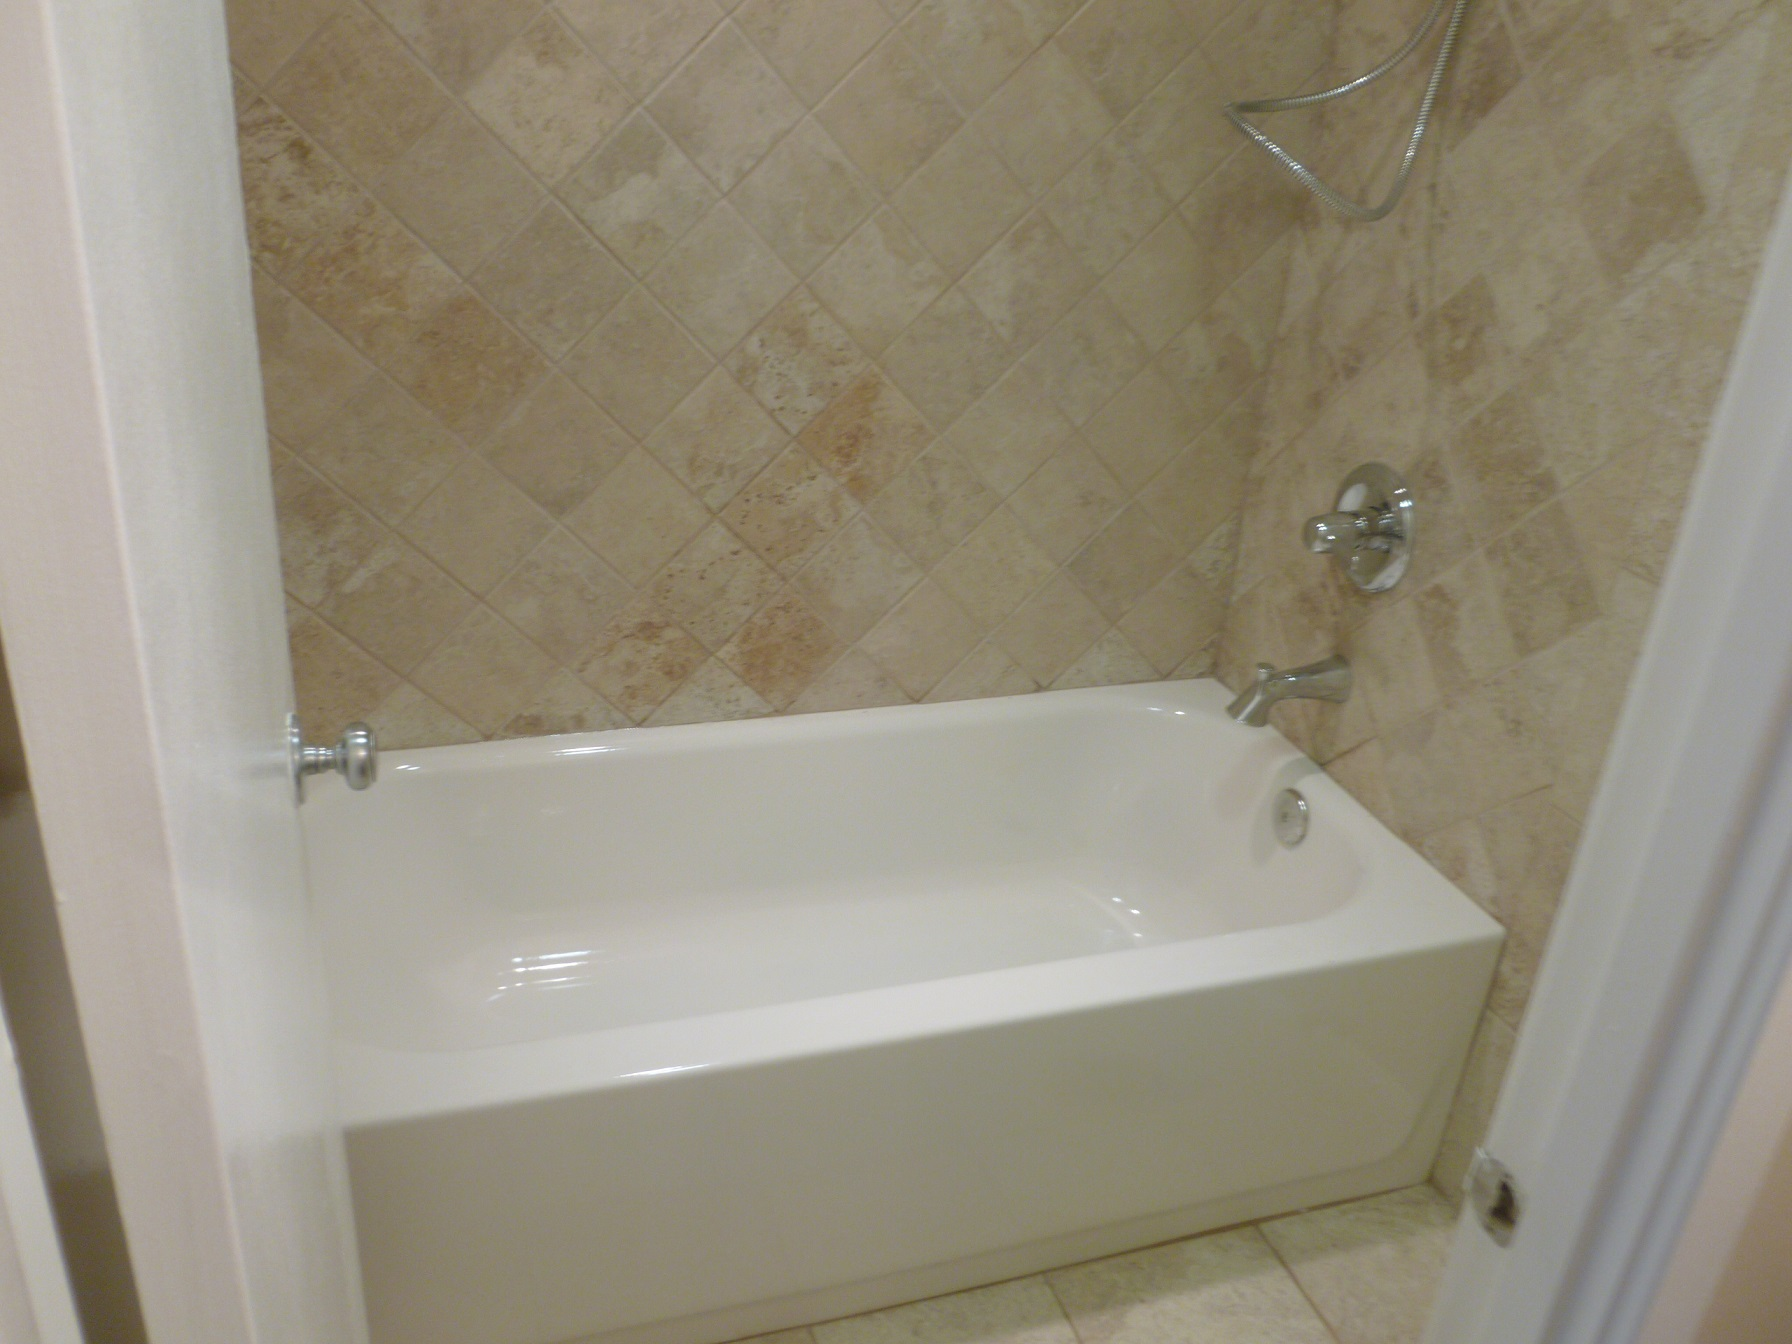 Bathroom Remodeling Contractor in Fair Oaks, Virginia